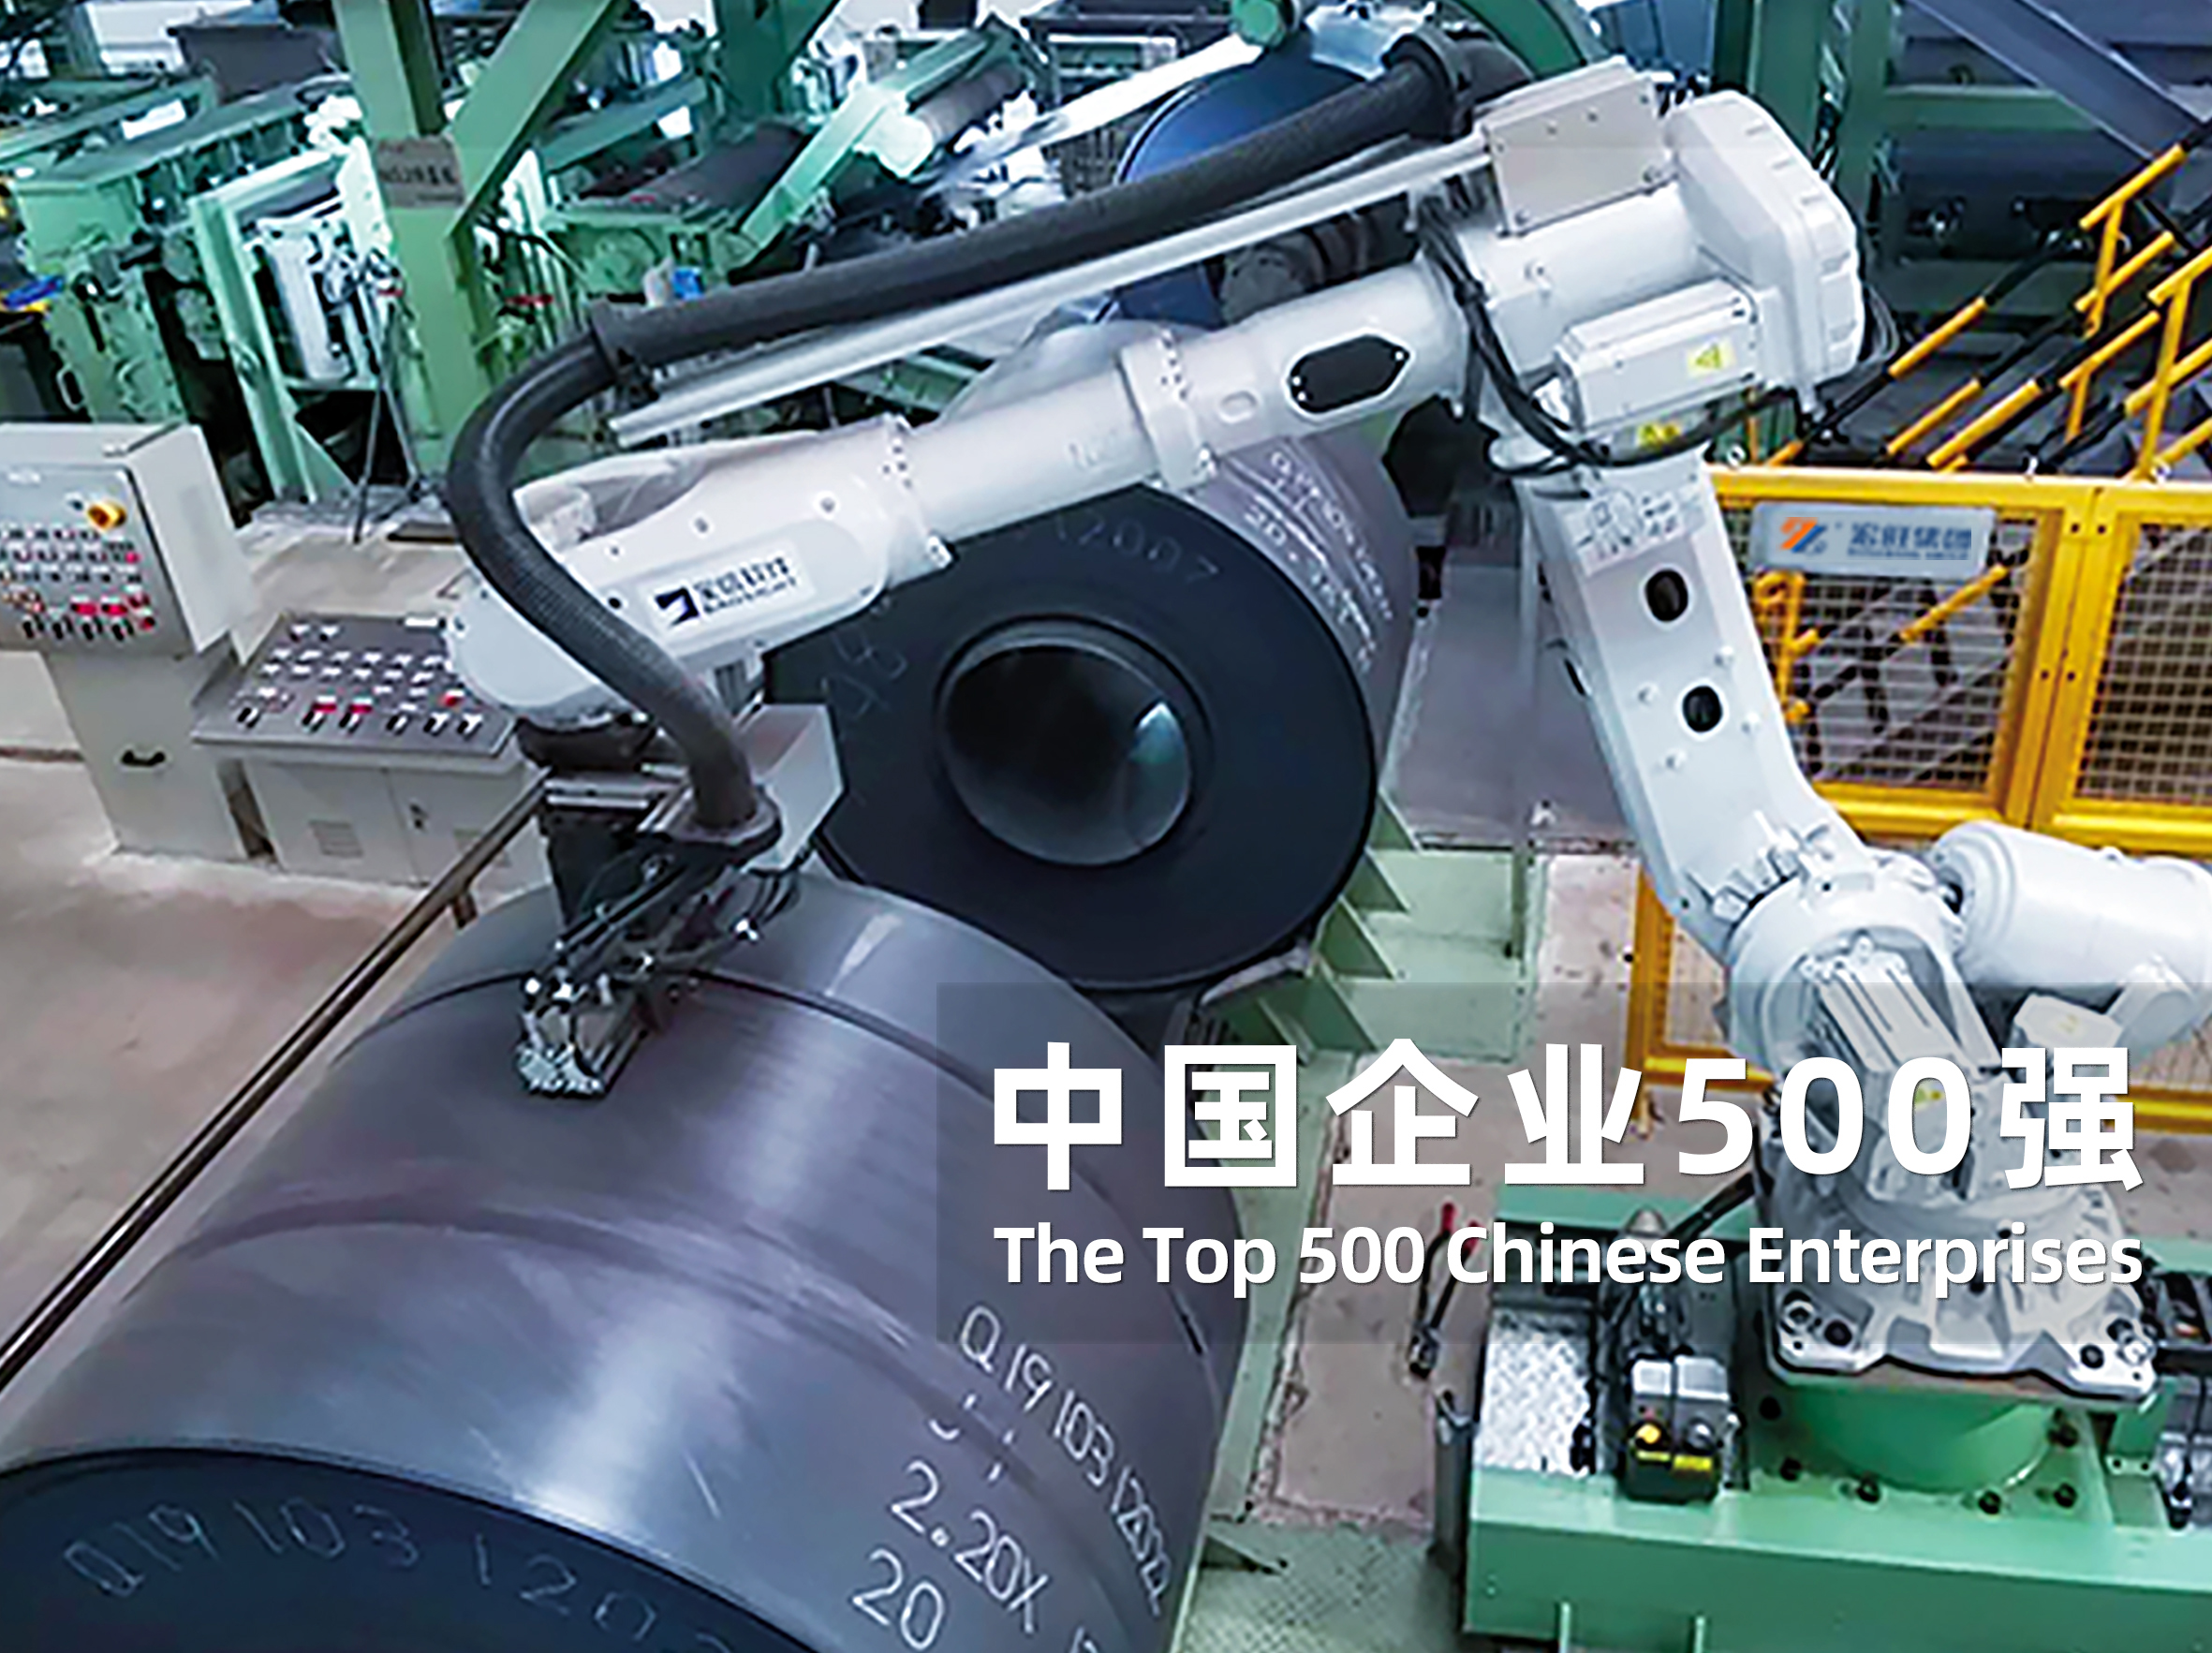 Hongwang Investment Group ranks 485th among 2020 Top 500 Chinese Enterprises